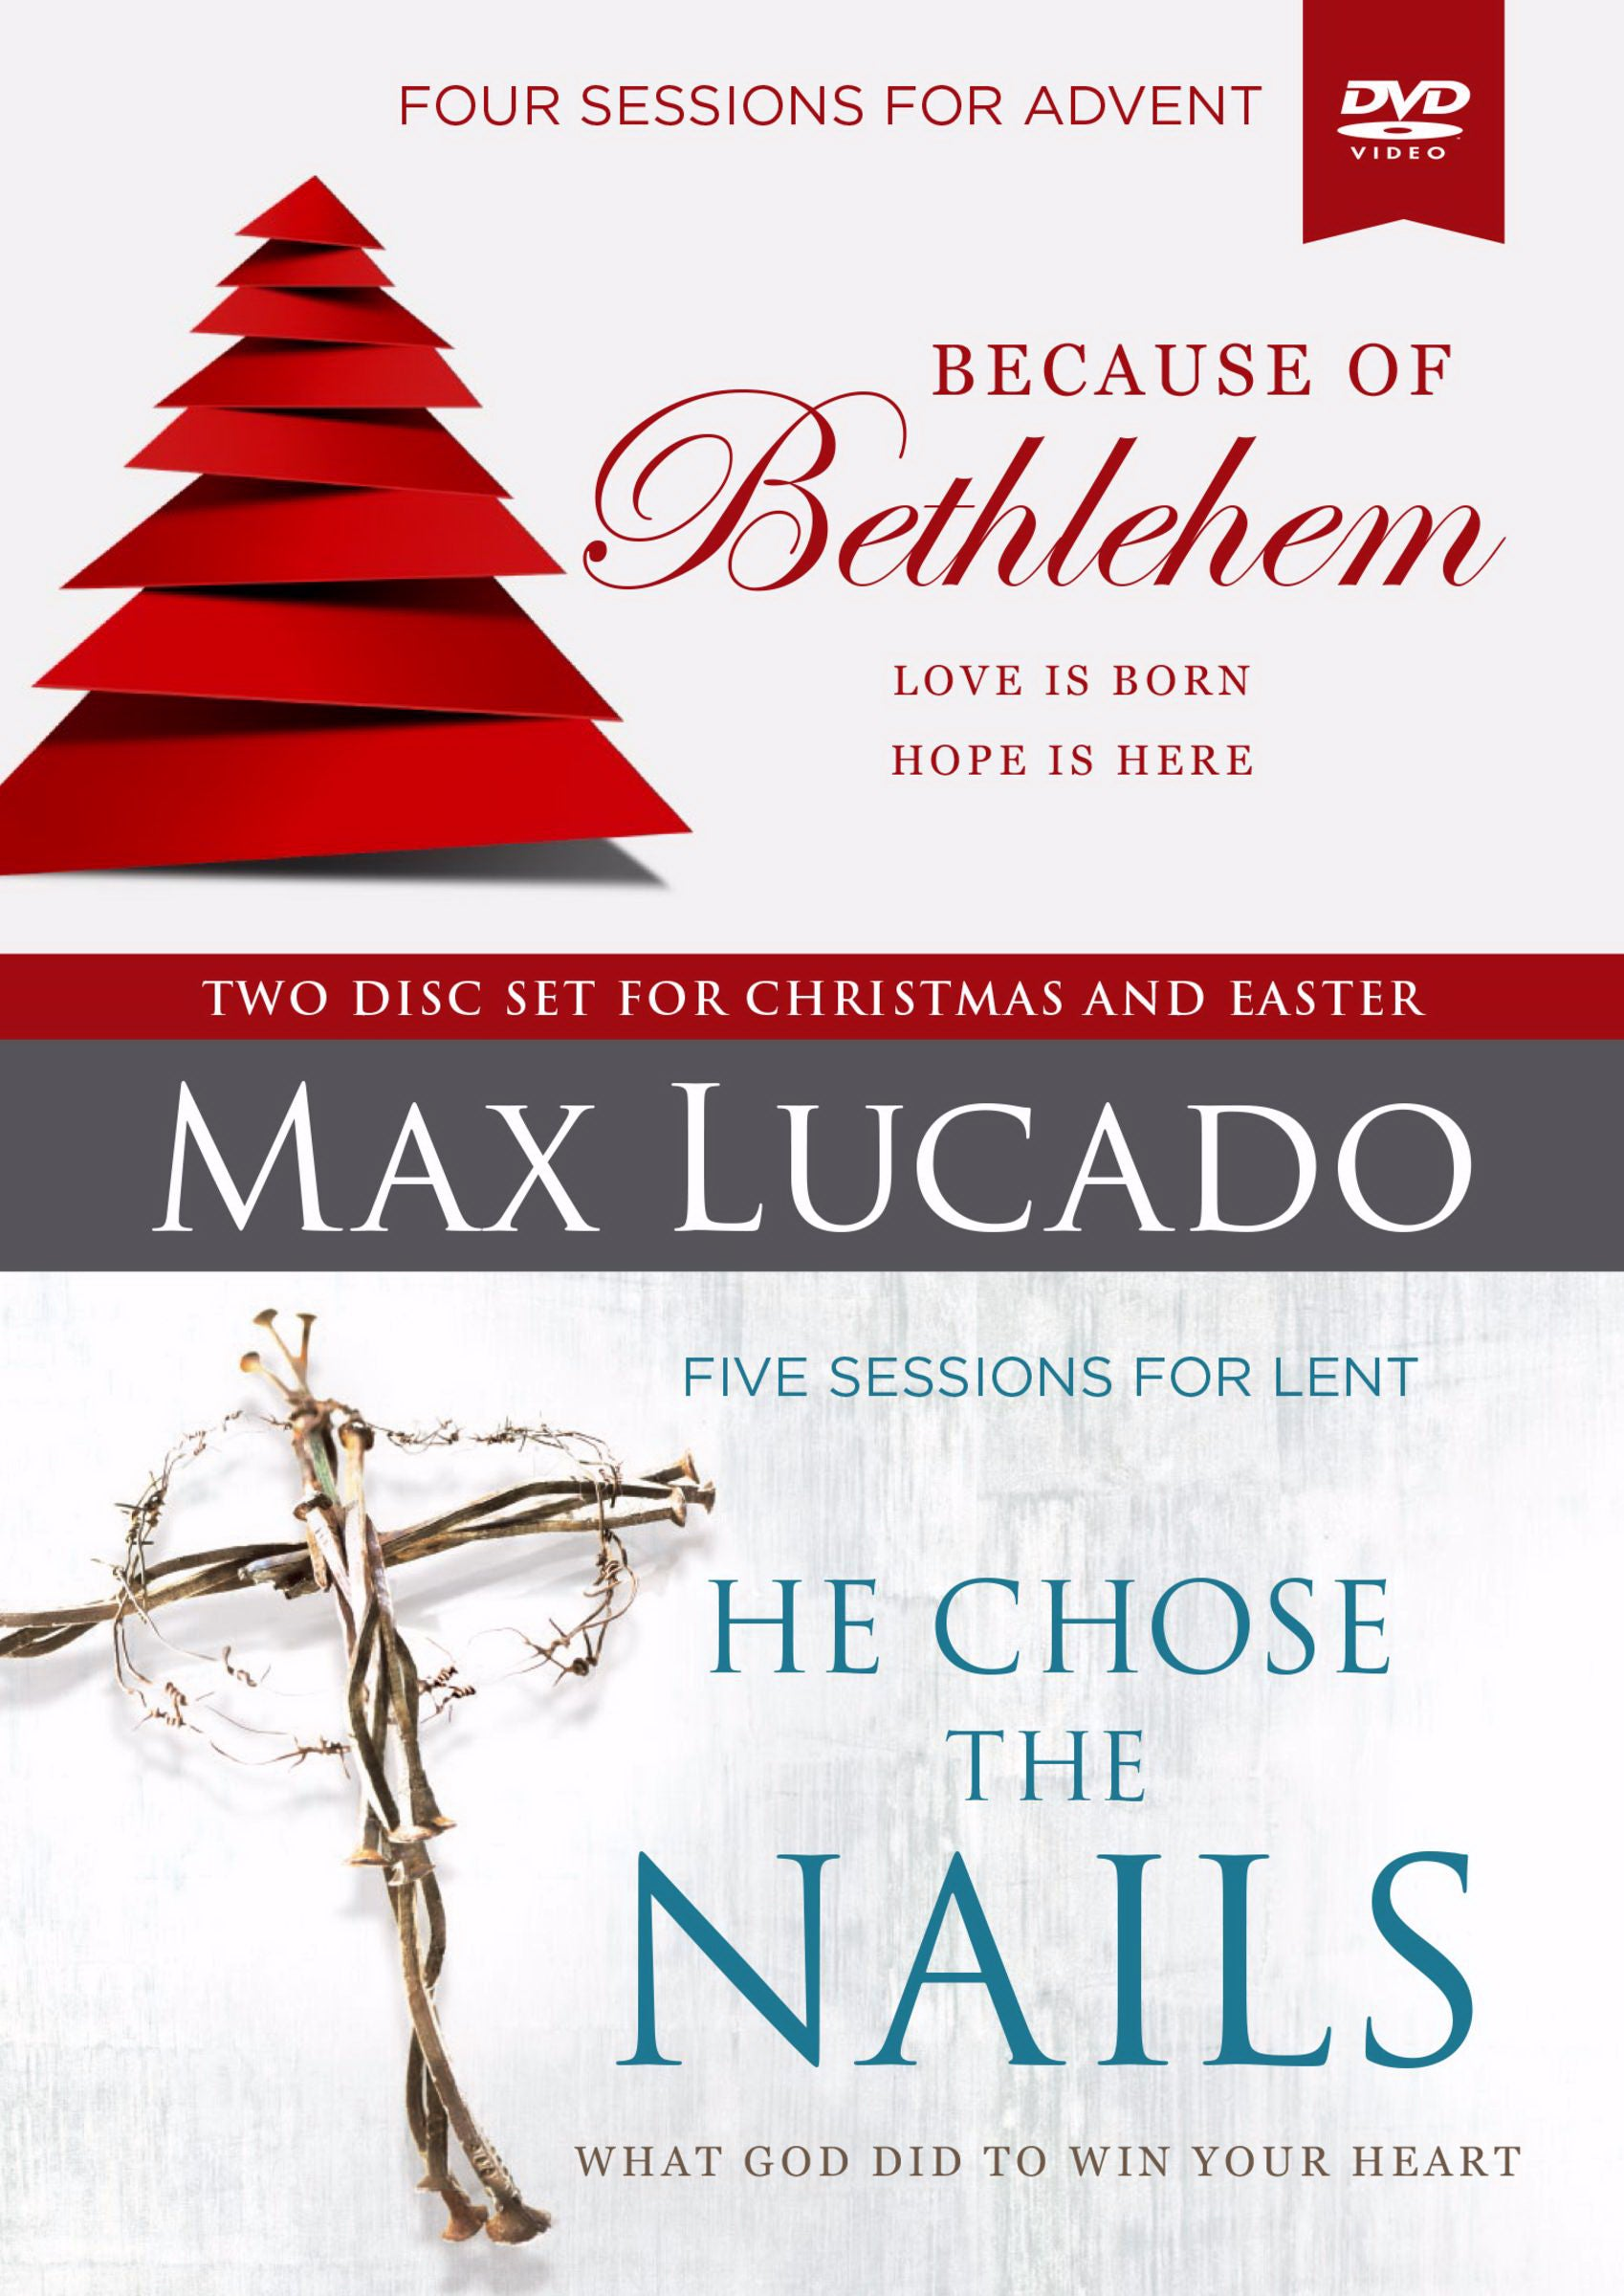 DVD-Because Of Bethlehem-He Chose The Nails: A DVD Study